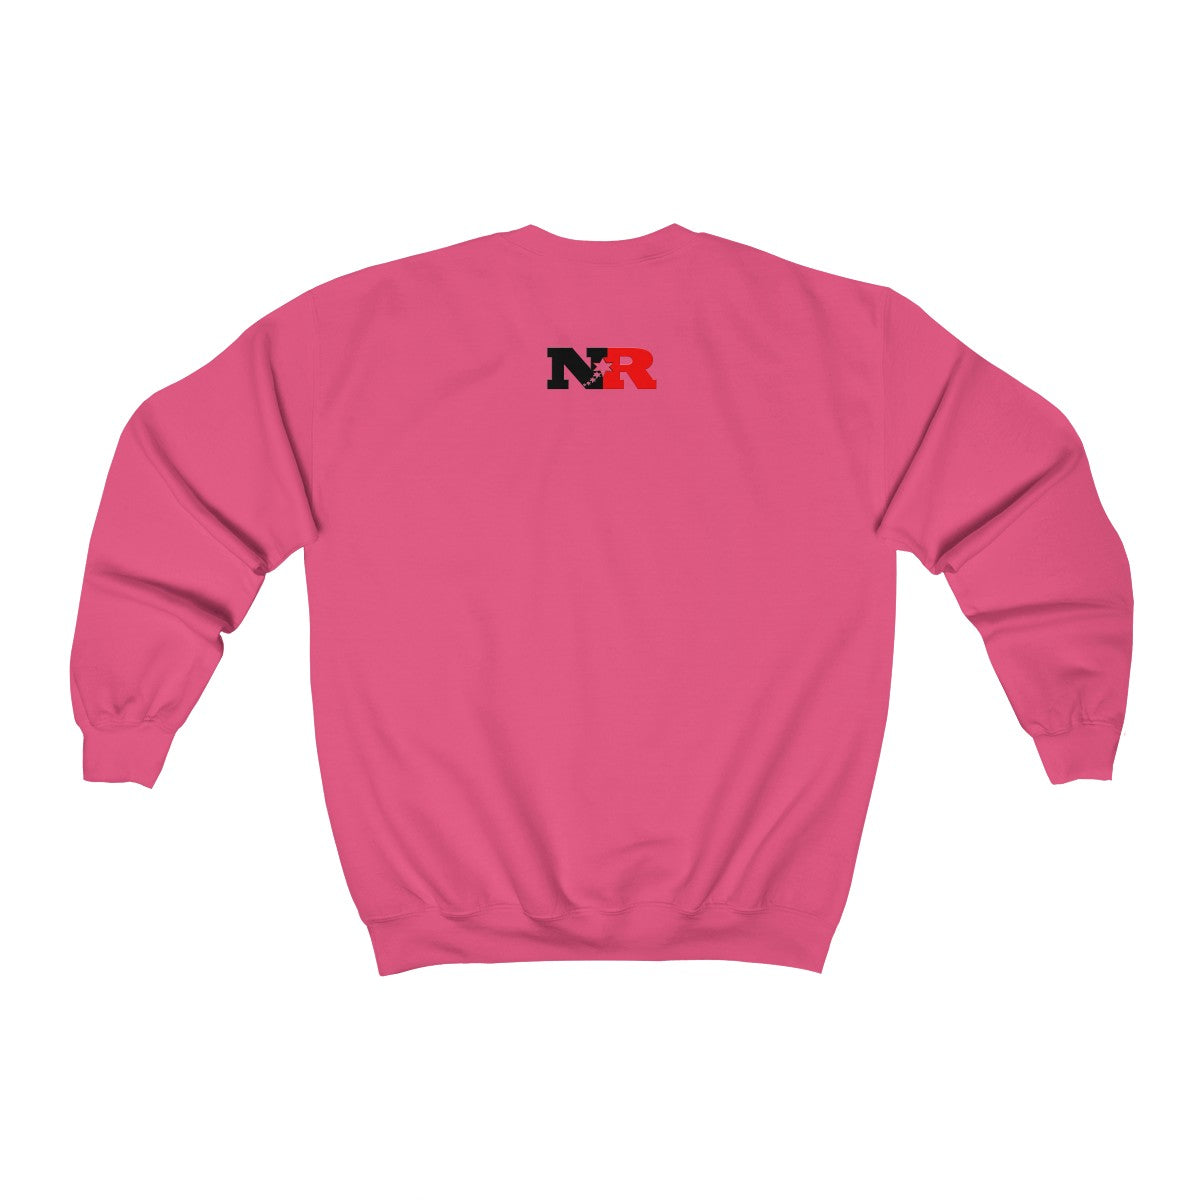 Unisex Heavy Blend™ Crewneck Sweatshirt  - Wild Child